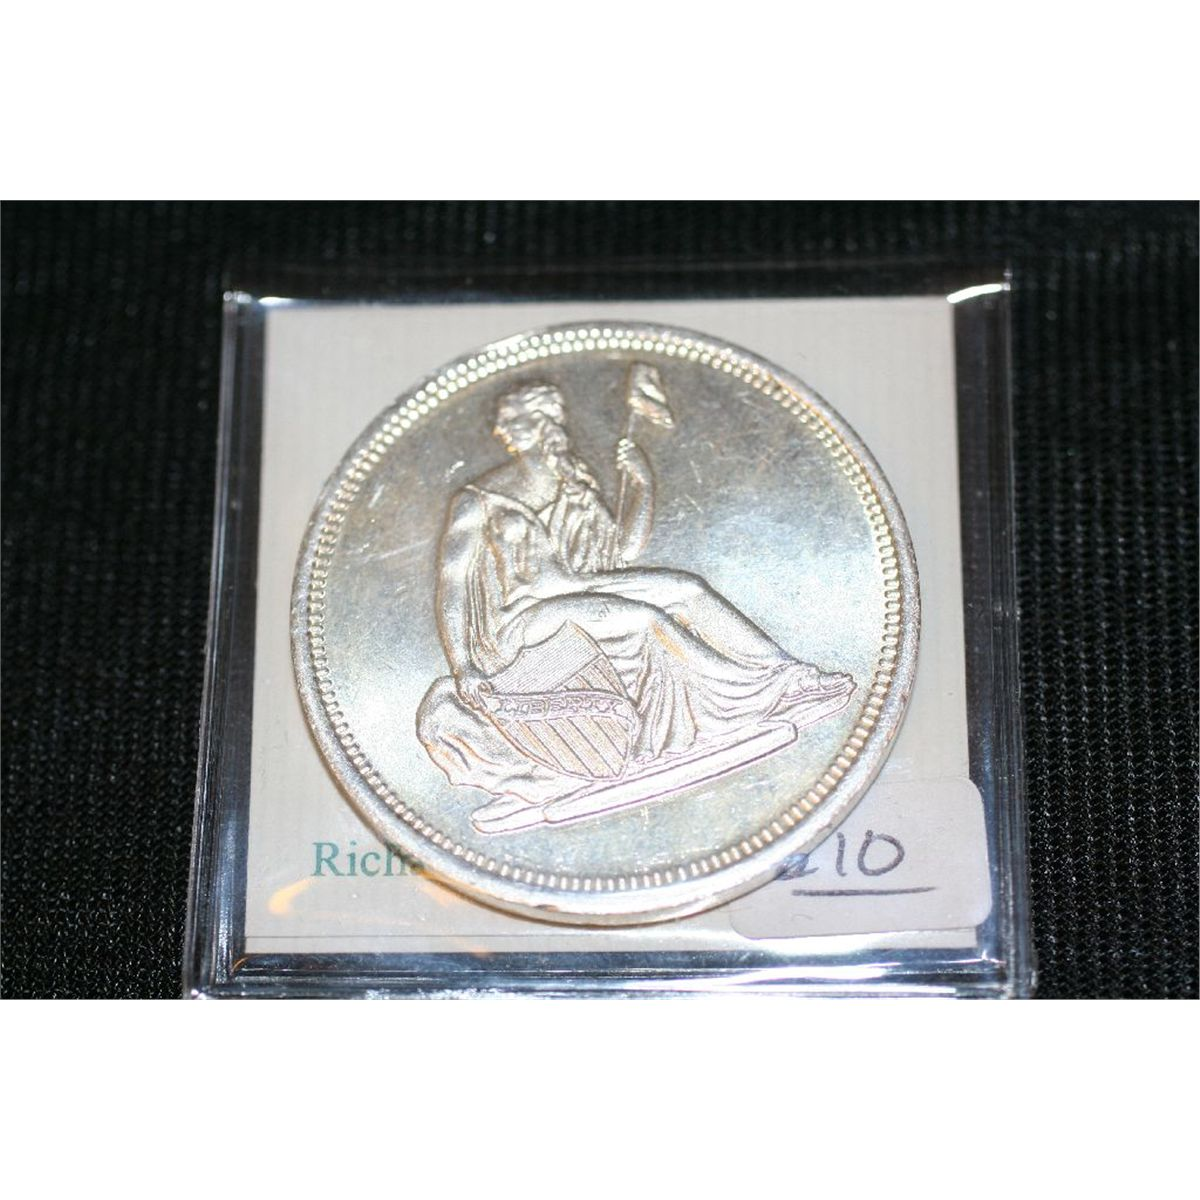 What Is The Value Of 1 Troy Ounce 999 Silver April 2019